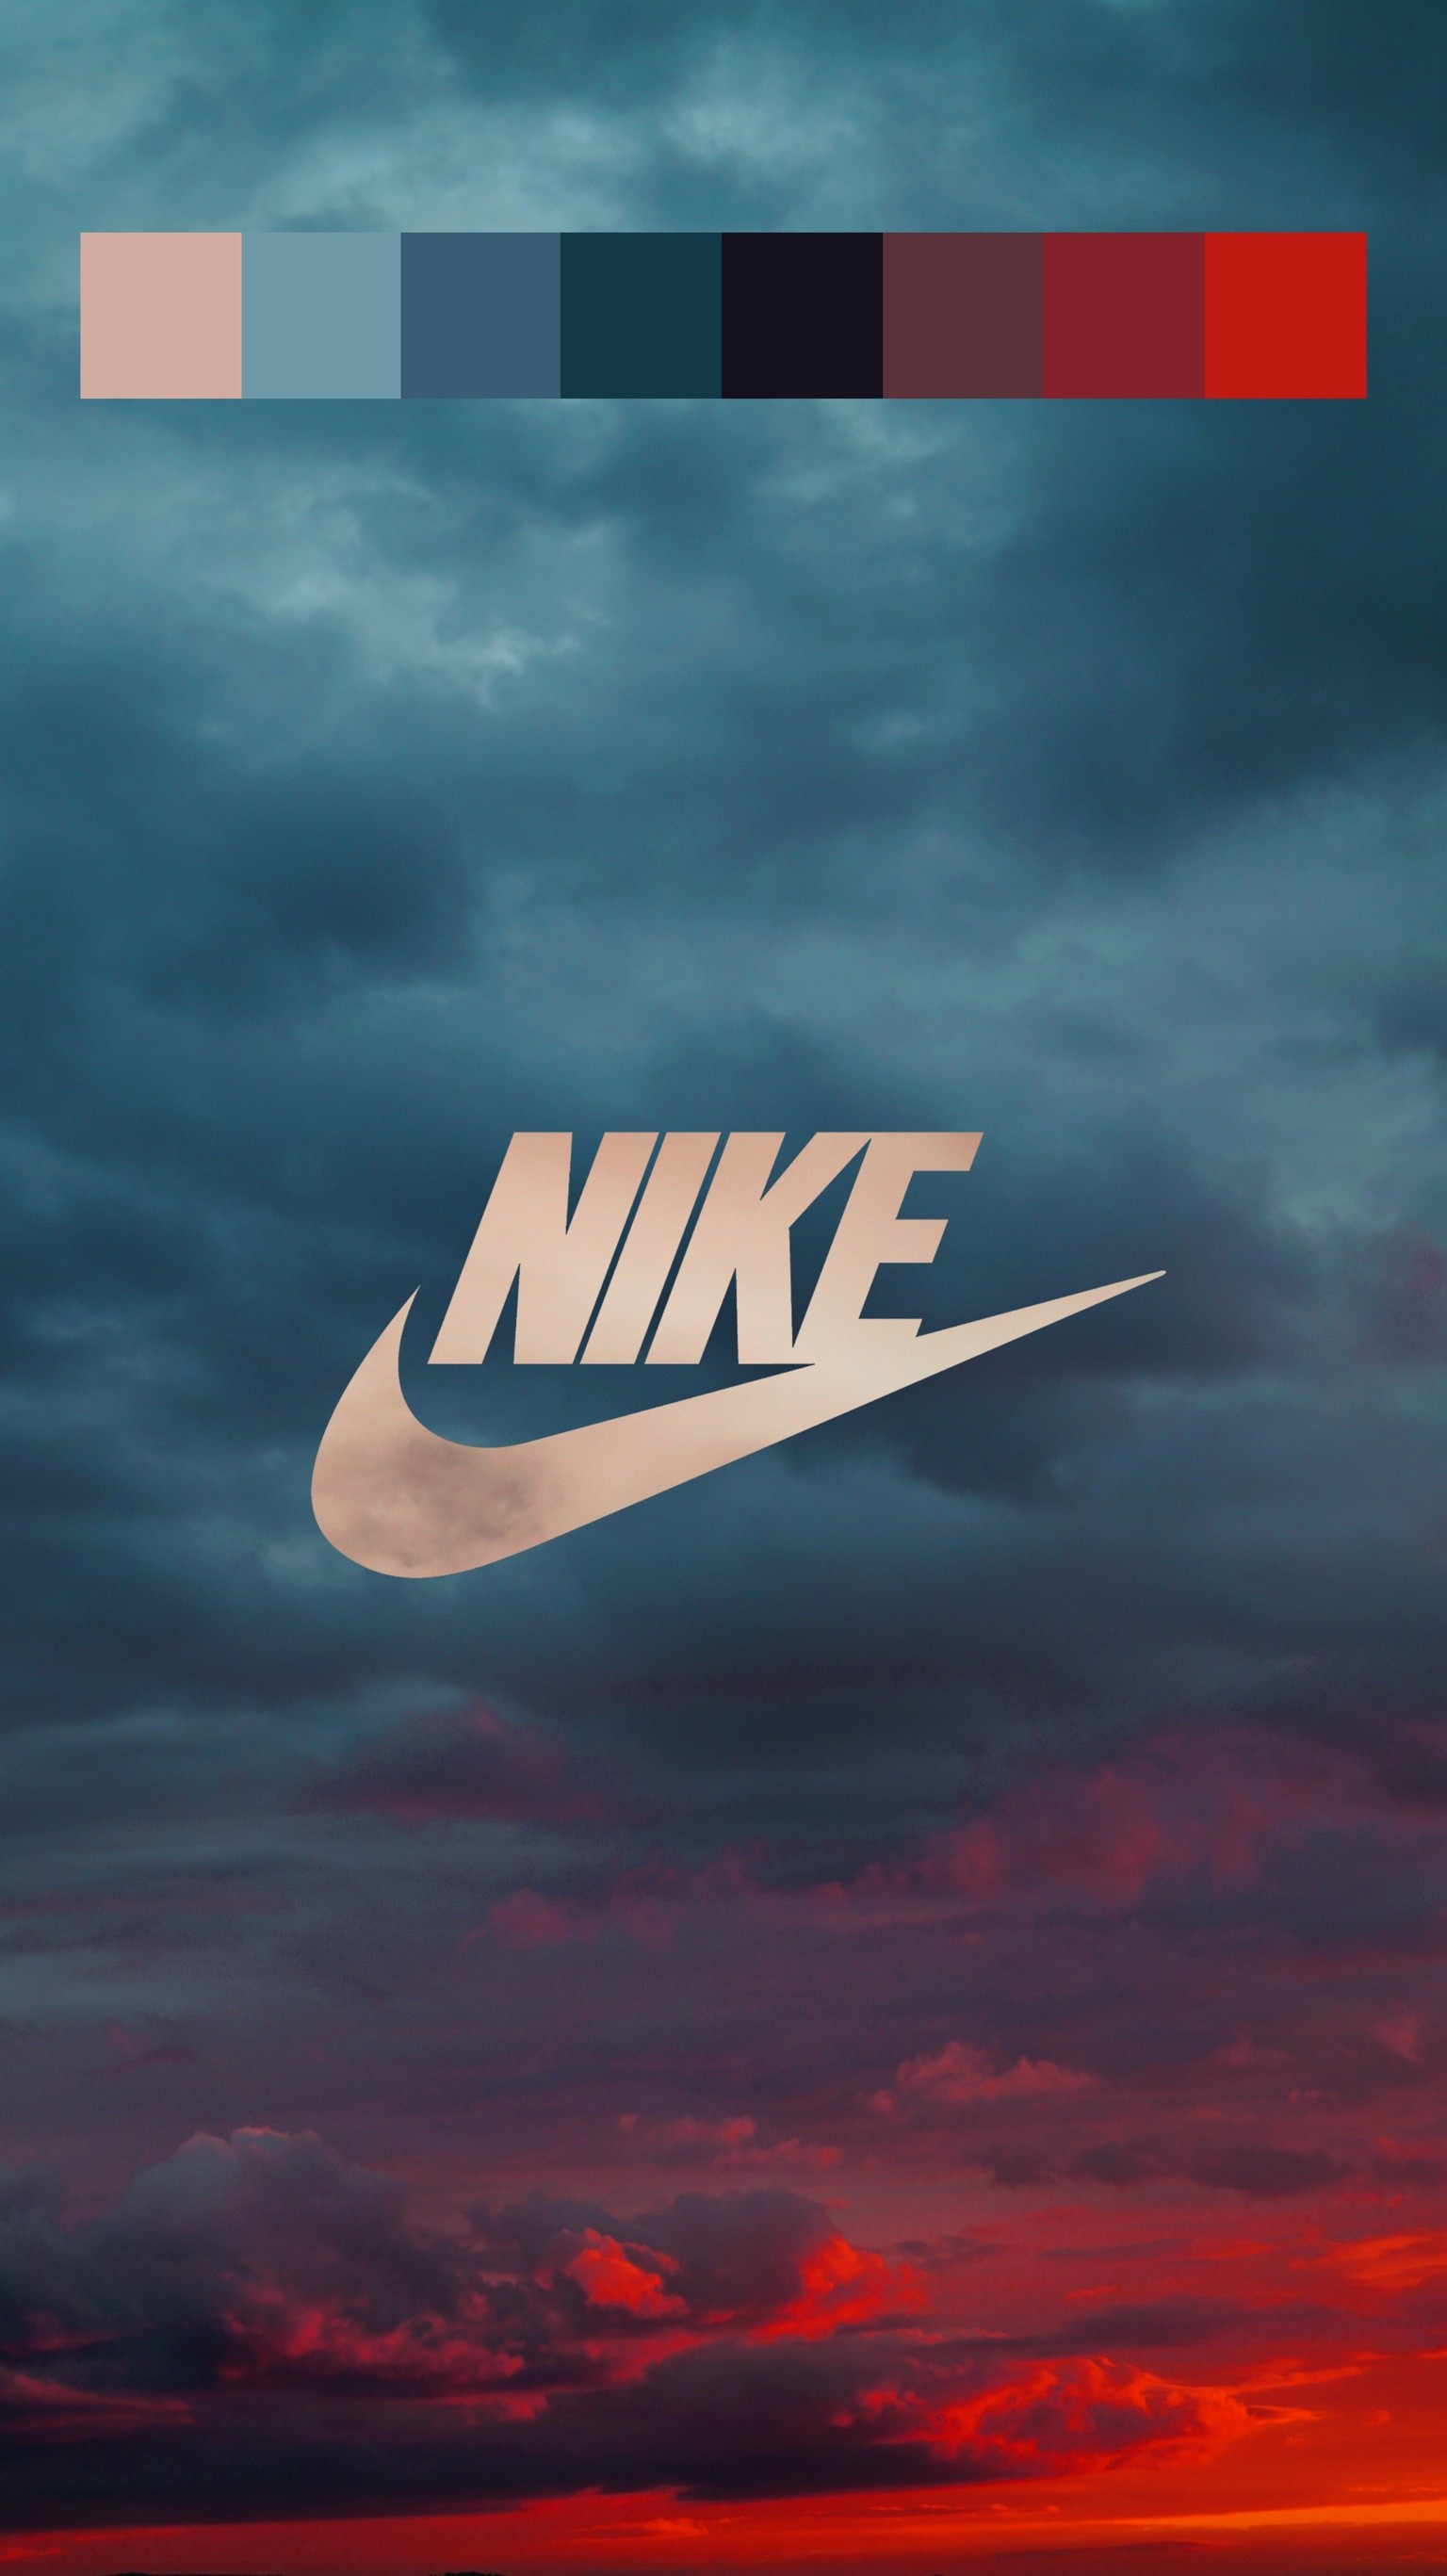 Nike wallpaper backgrounds wallpapertag - Nike wallpaper hd ...